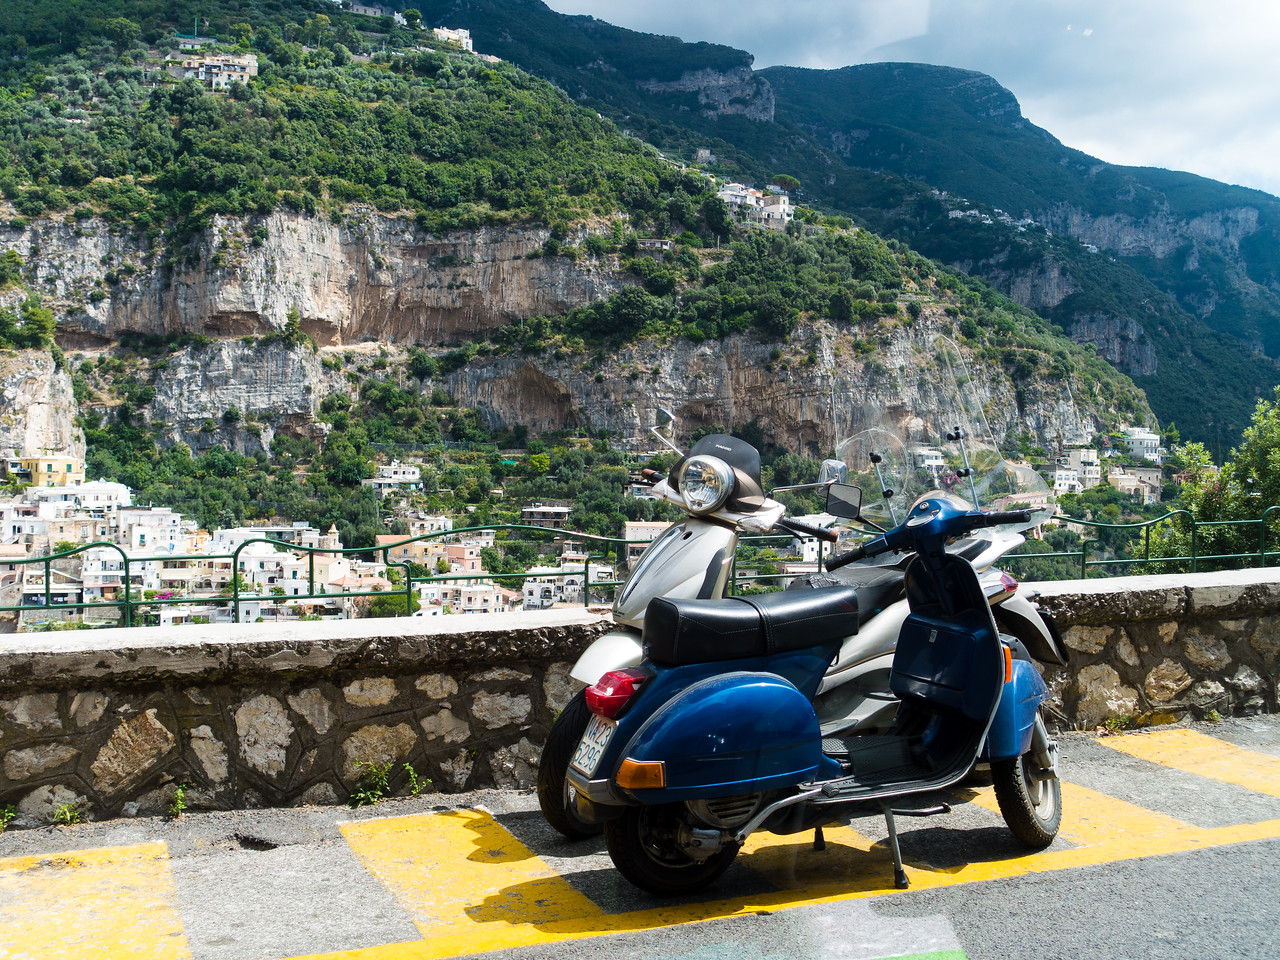 Vespas and the Amalfi coast